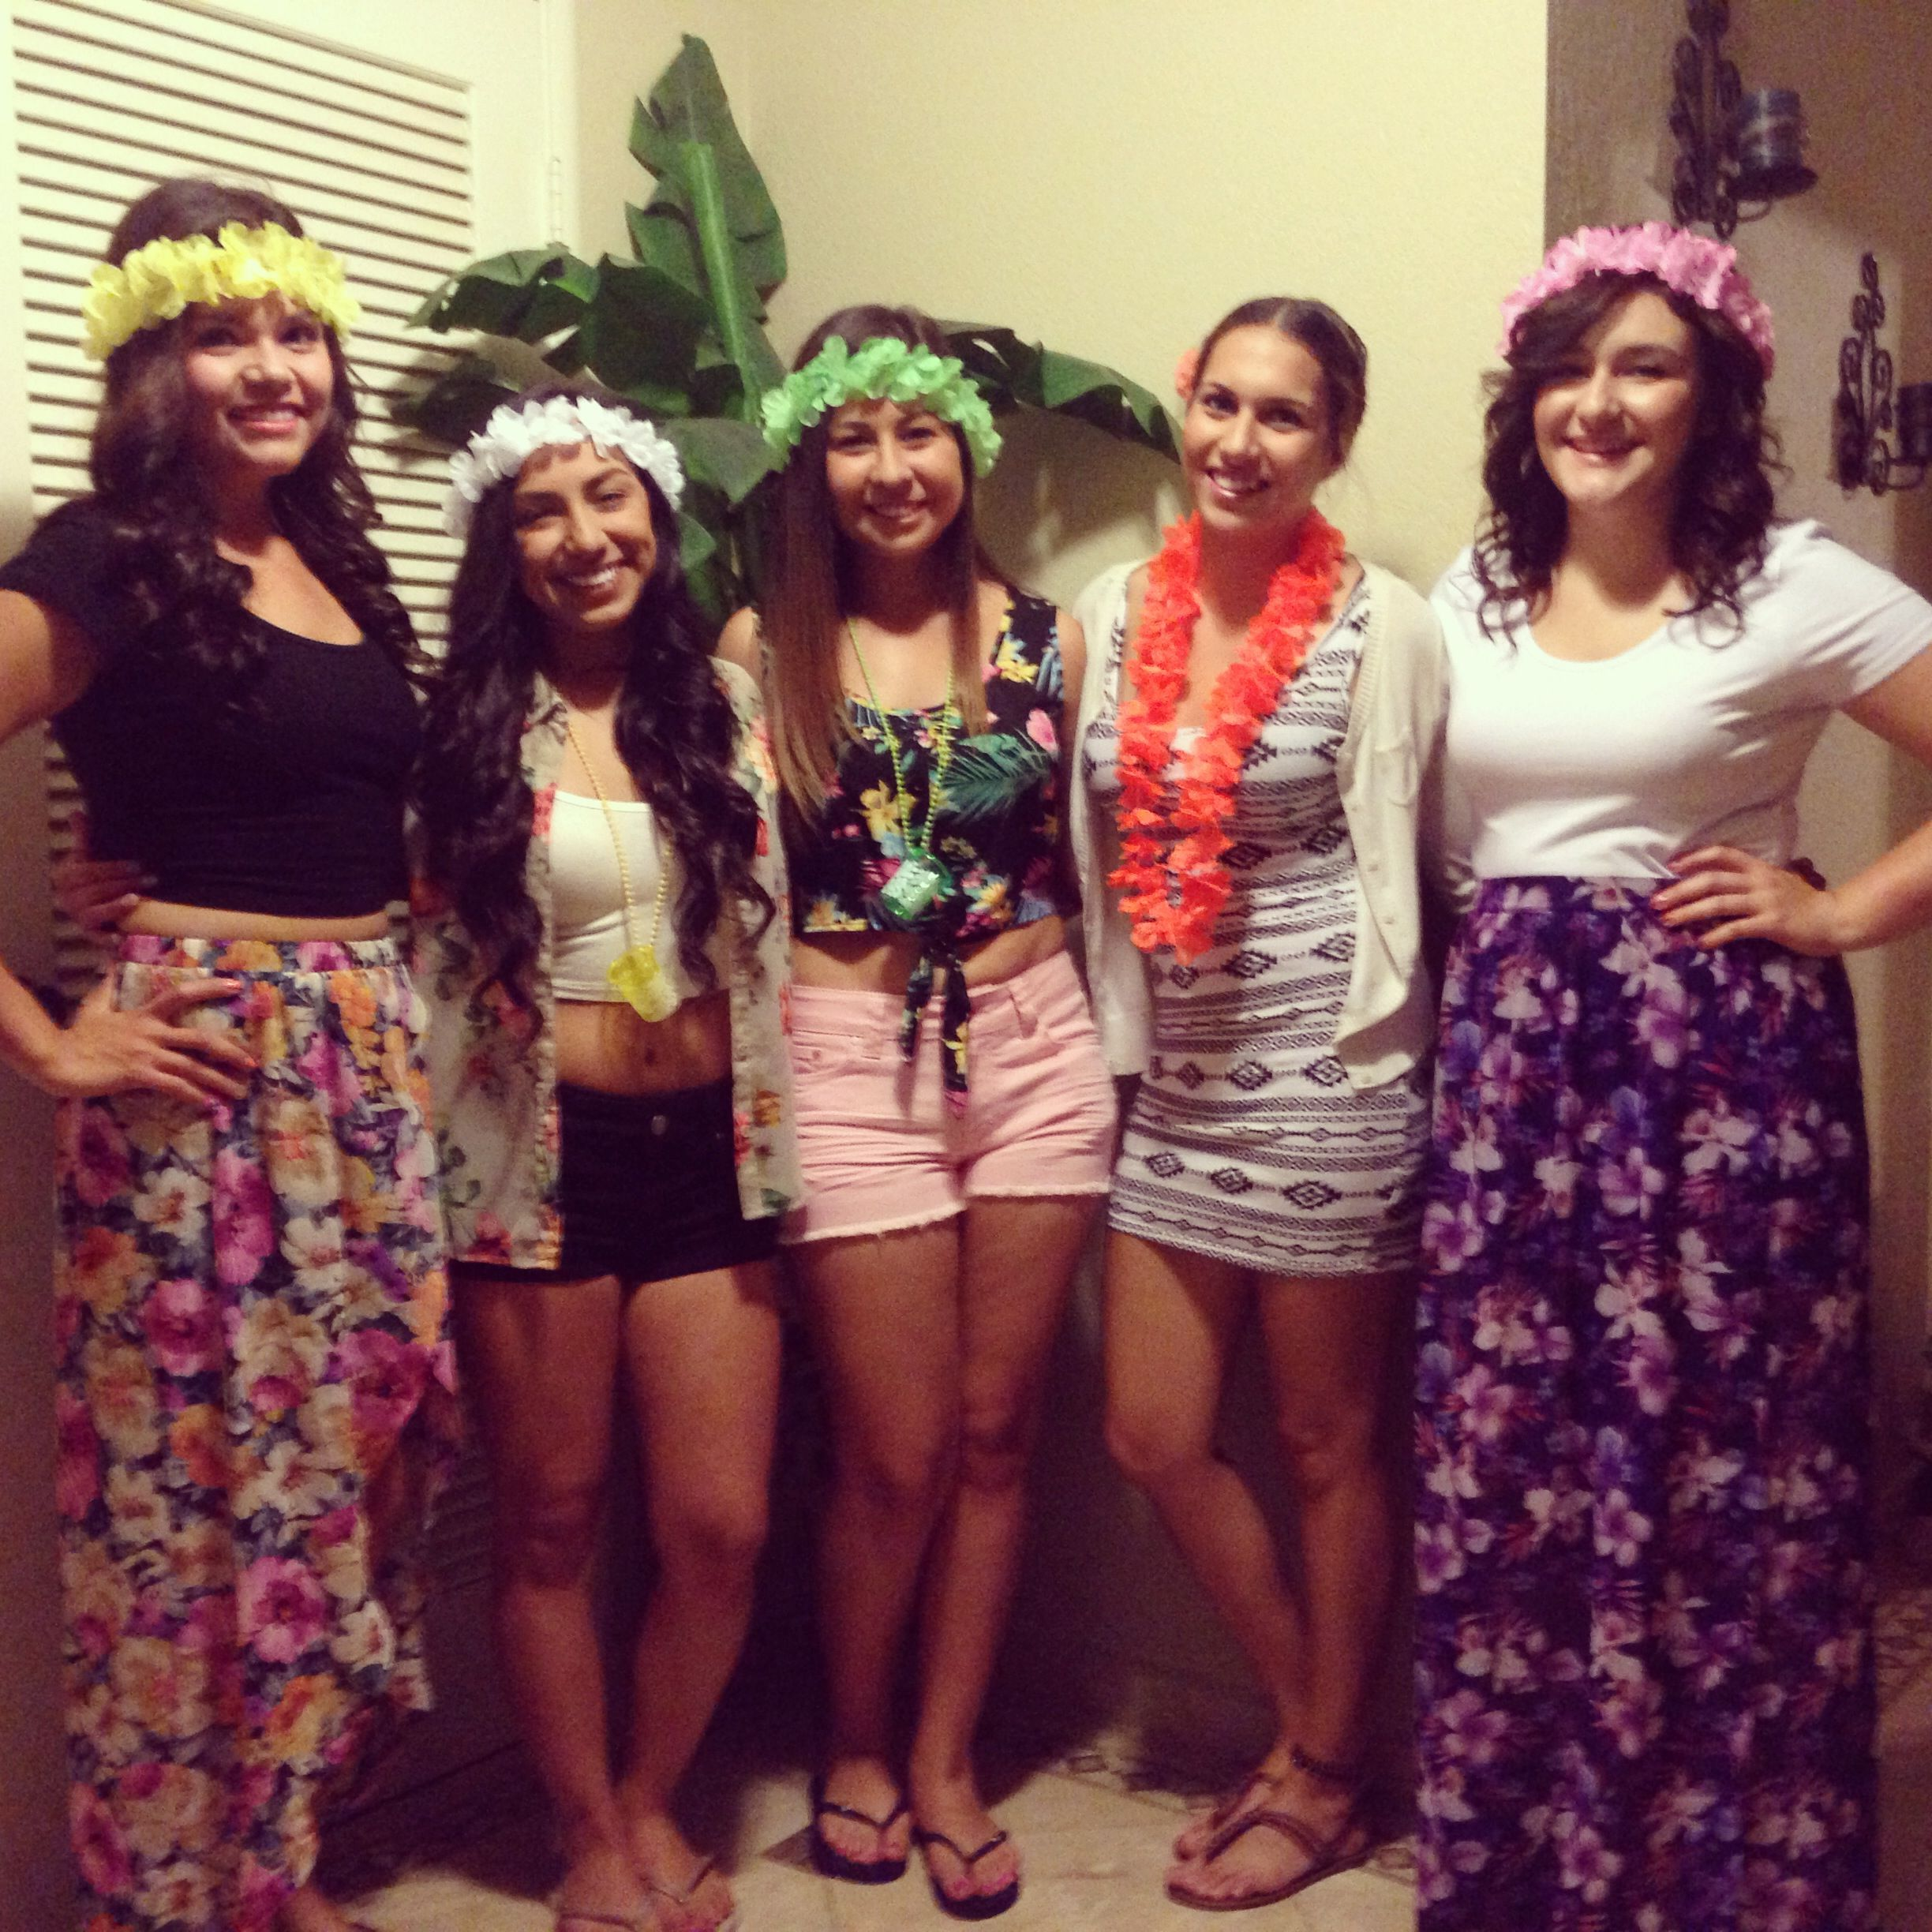 Hawaiian themed party 19th birthday party ideas Hawaiian outfit